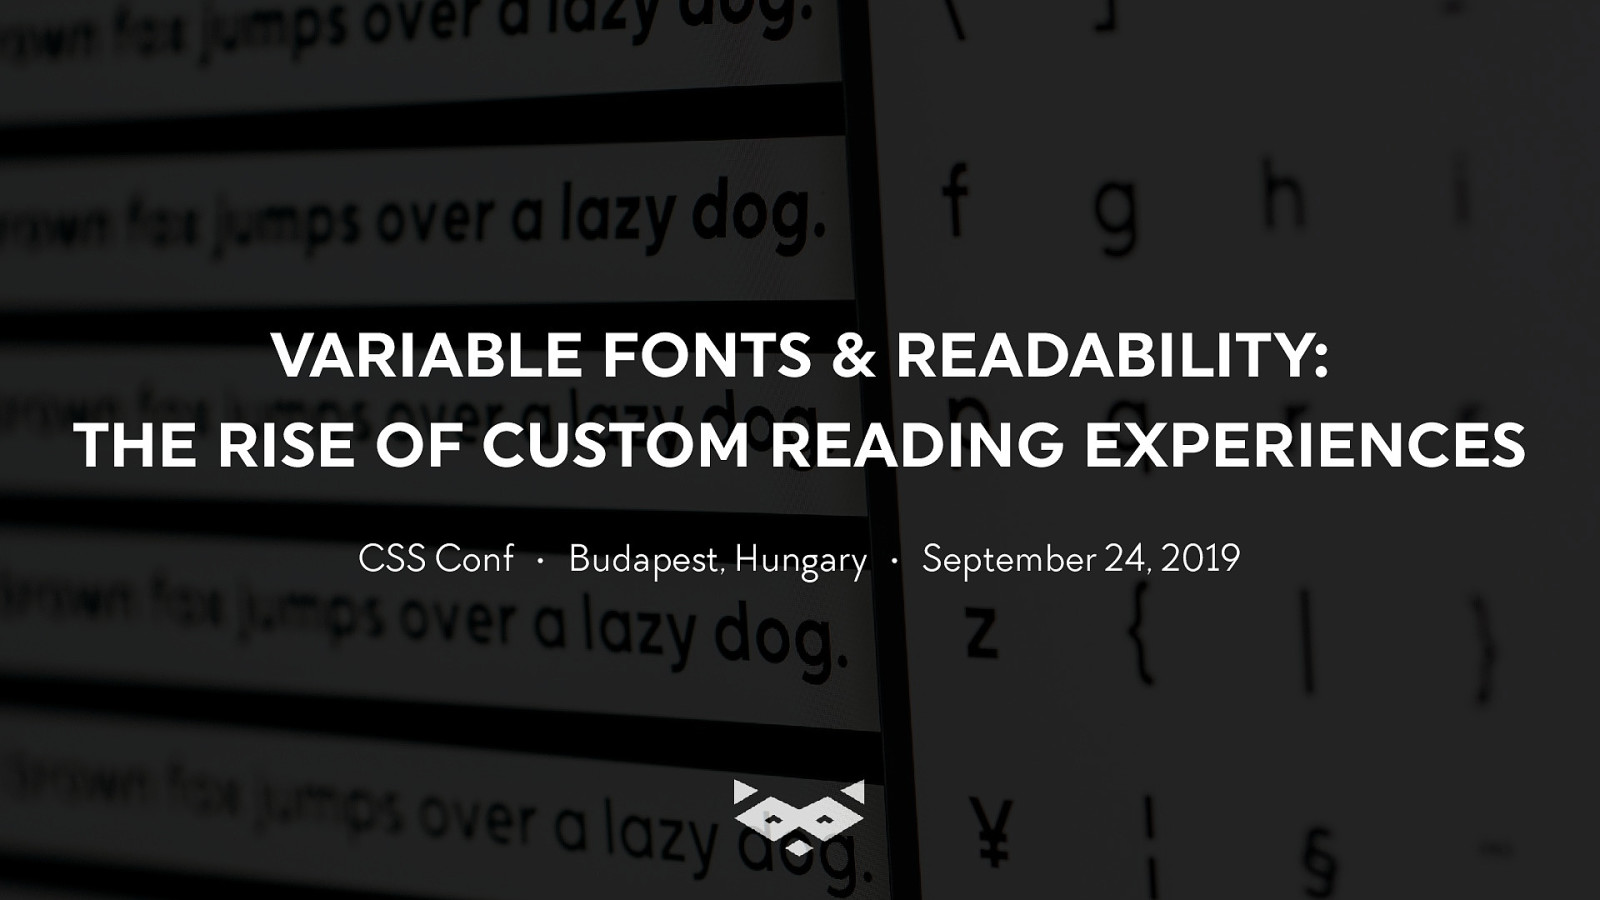 Variable fonts & readability: the rising of custom reading experiences